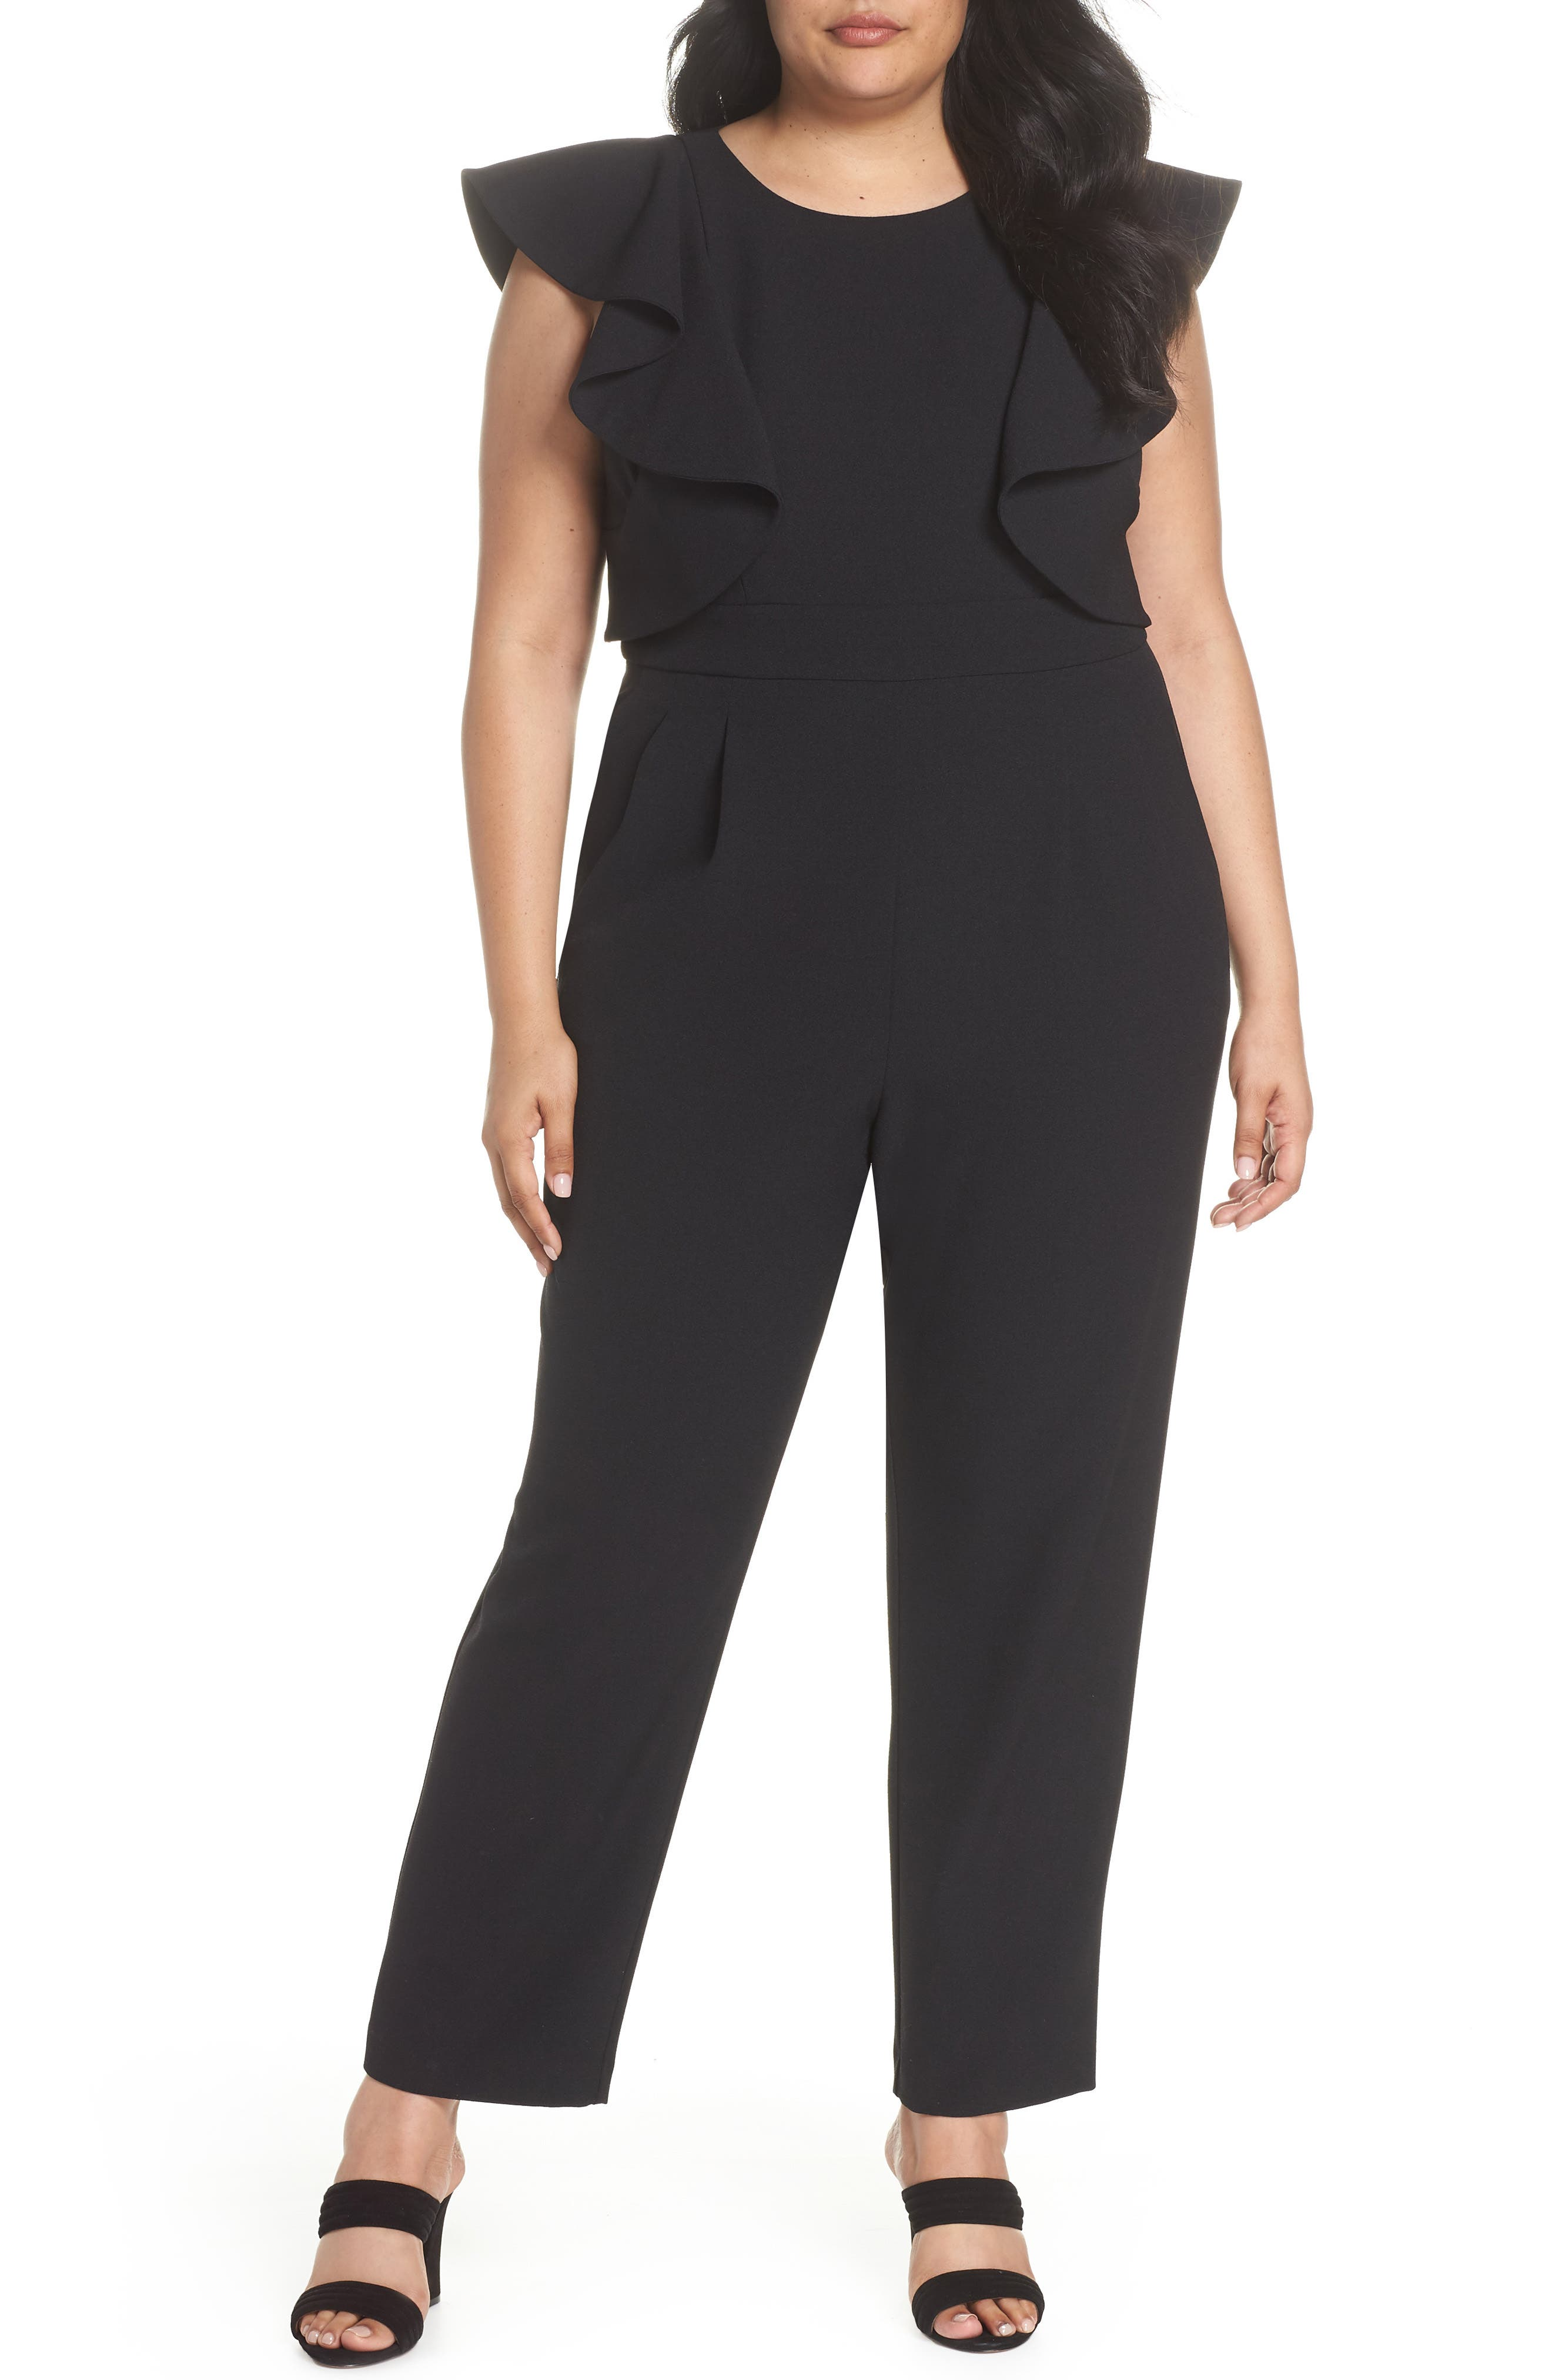 Semi Formal Dresses and Plus Size Pant Suits